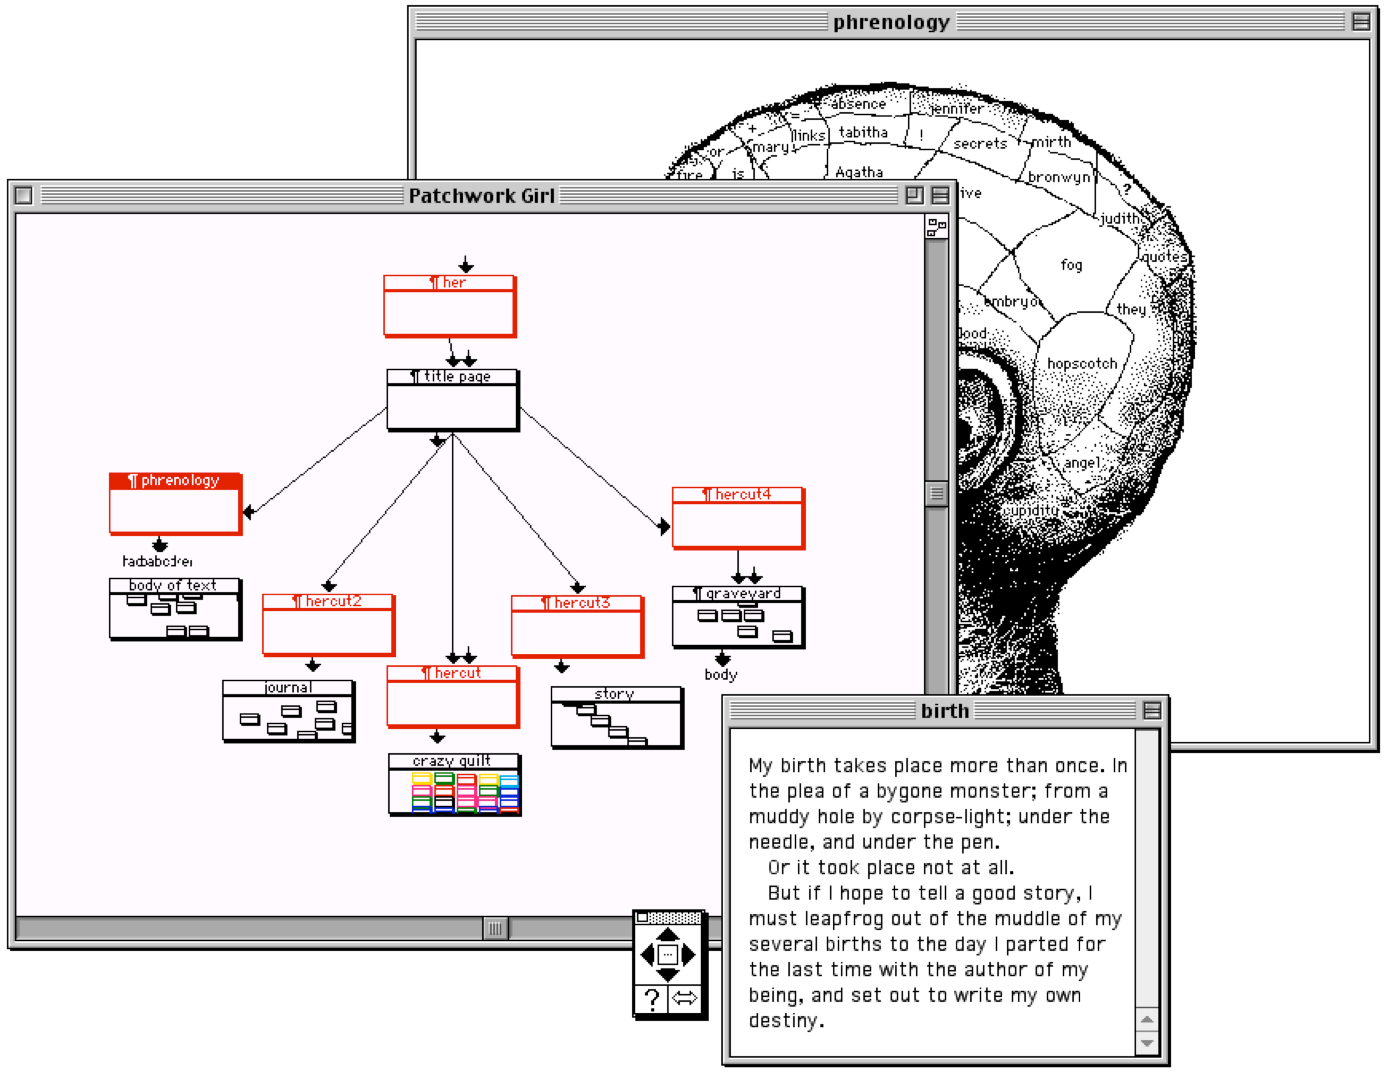 """Three Mac Classic windows. One is labeled """"phrenology"""" and contains a black-and-white image of a human head with labelled sections. The second is labelled """"Patchwork Girl"""" and shows an interlinked map of colored nodes. The third is labelled """"birth"""" and features a passage of text beginning """"My birth takes place more than once."""""""